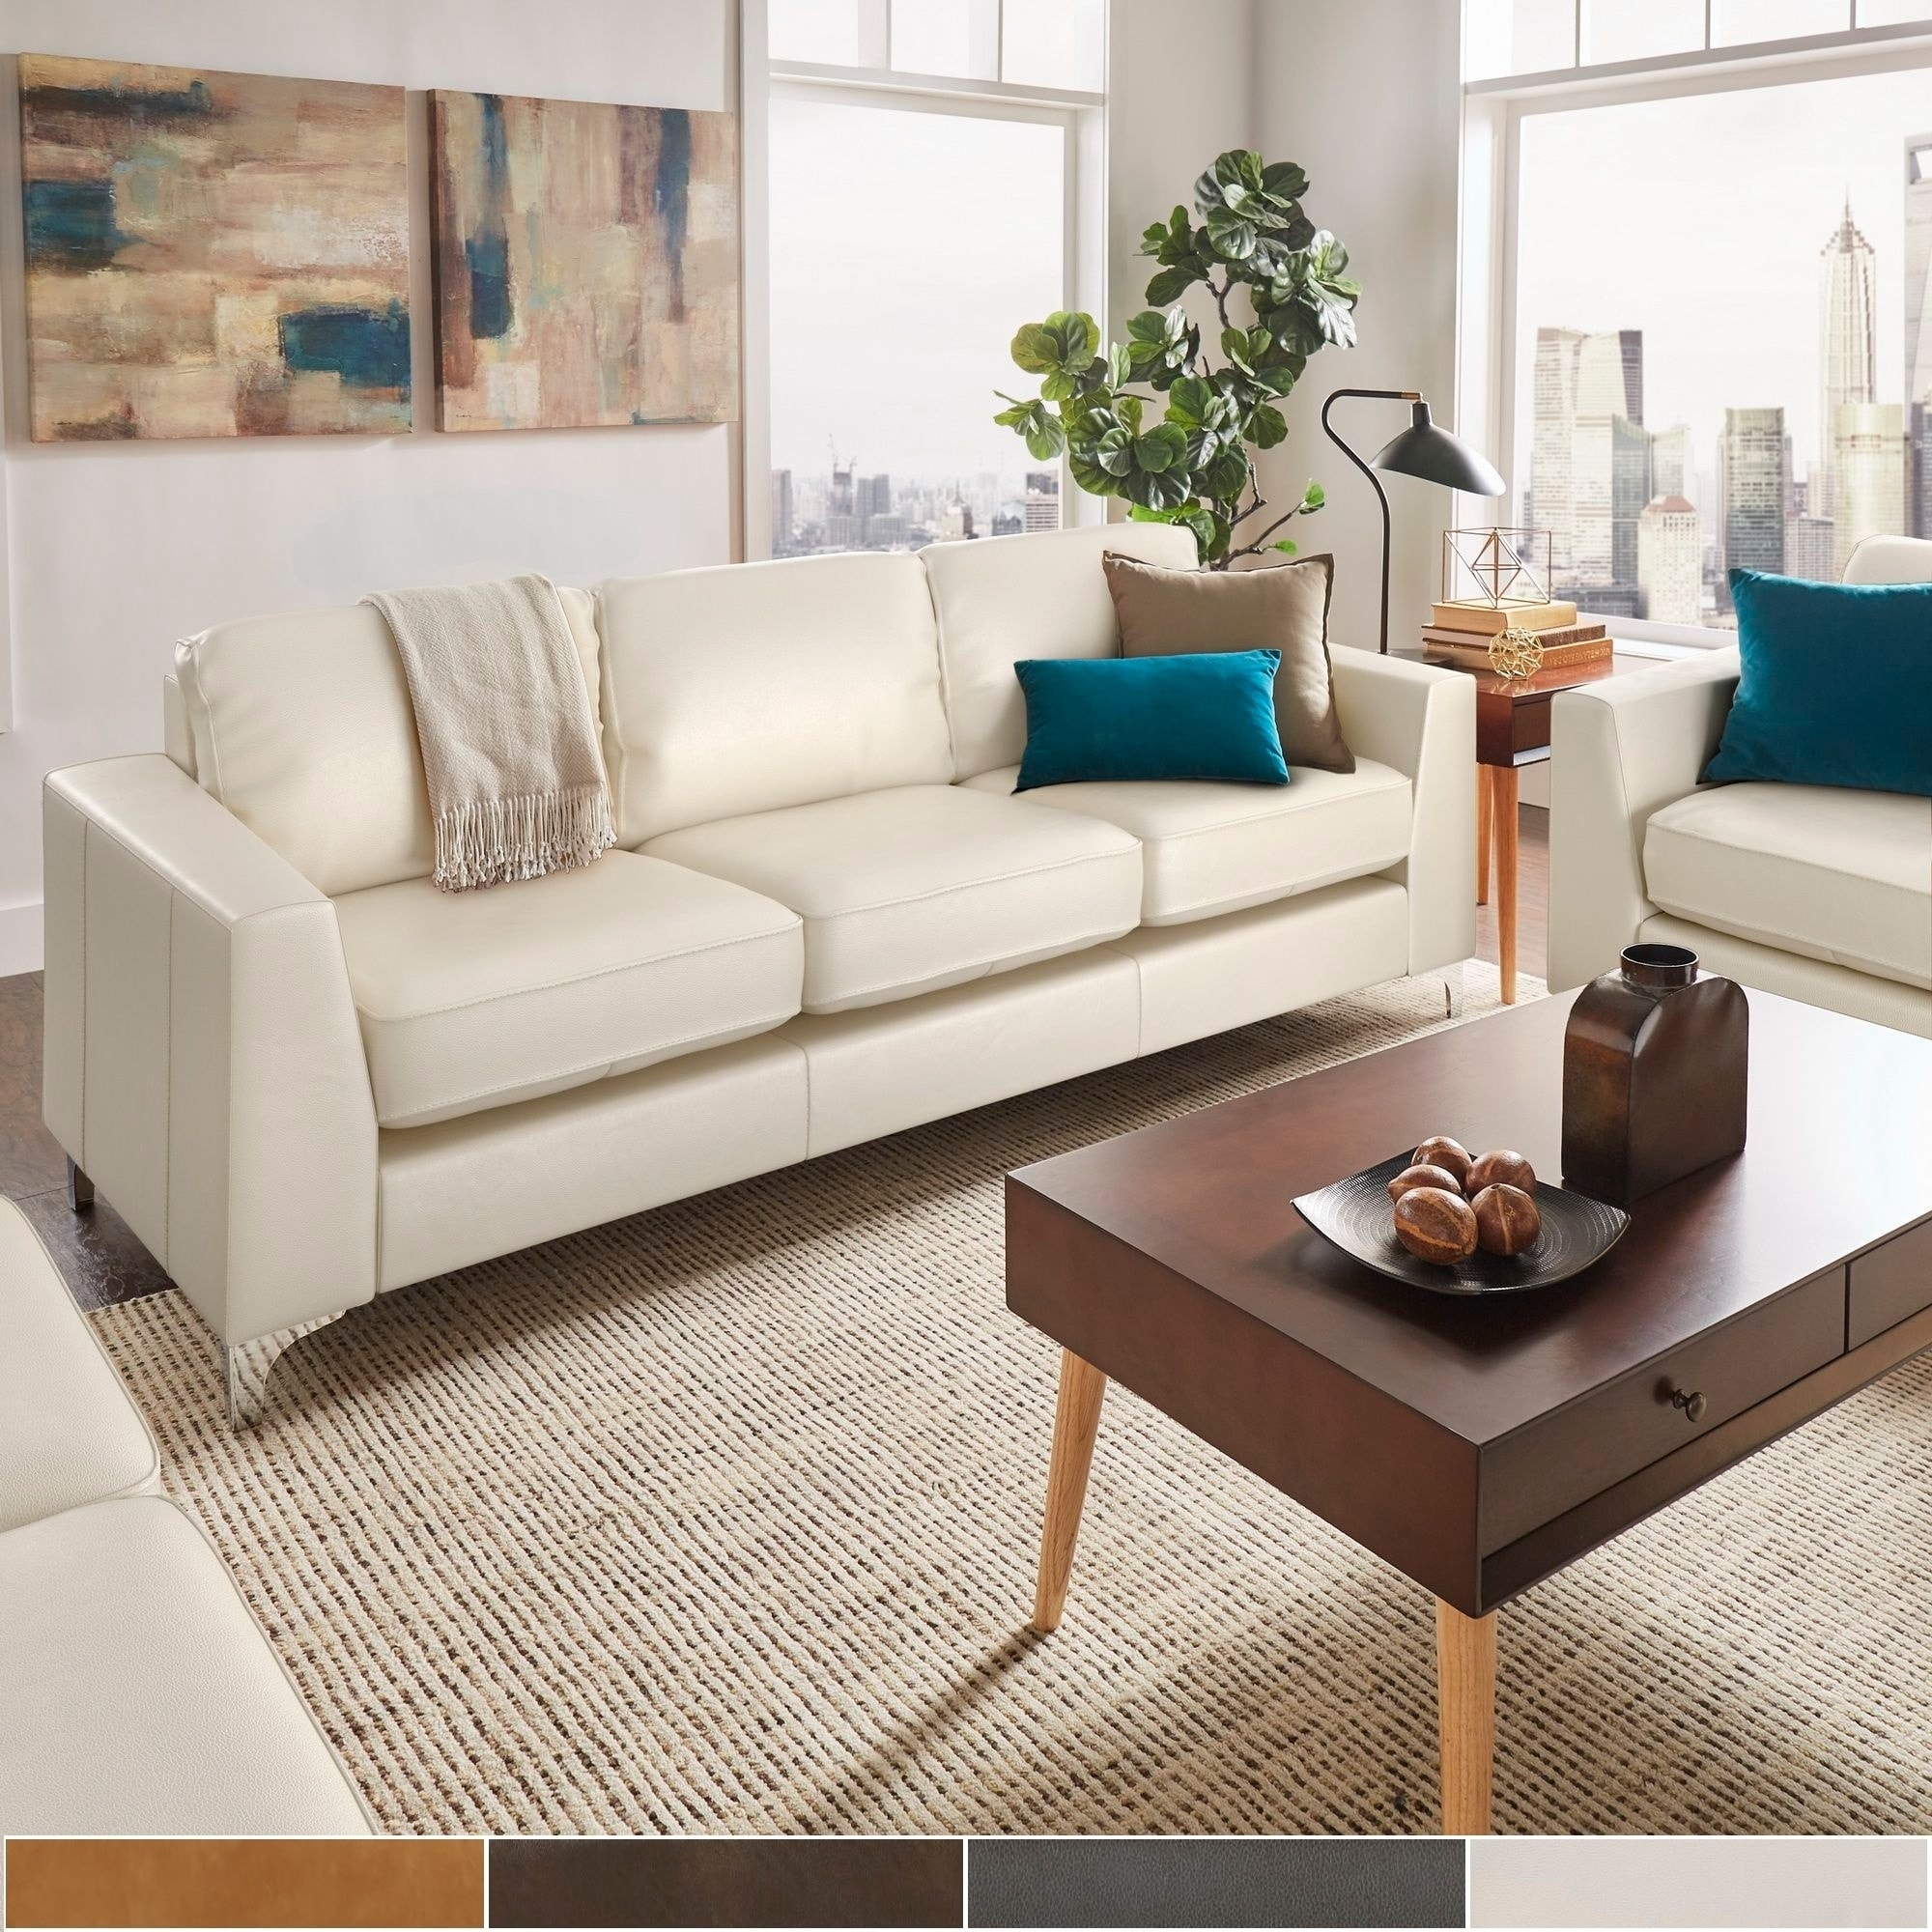 buy sofas couches online at overstock our best living room rh overstock com overstock.com outdoor sofas overstock.com sectional sofas